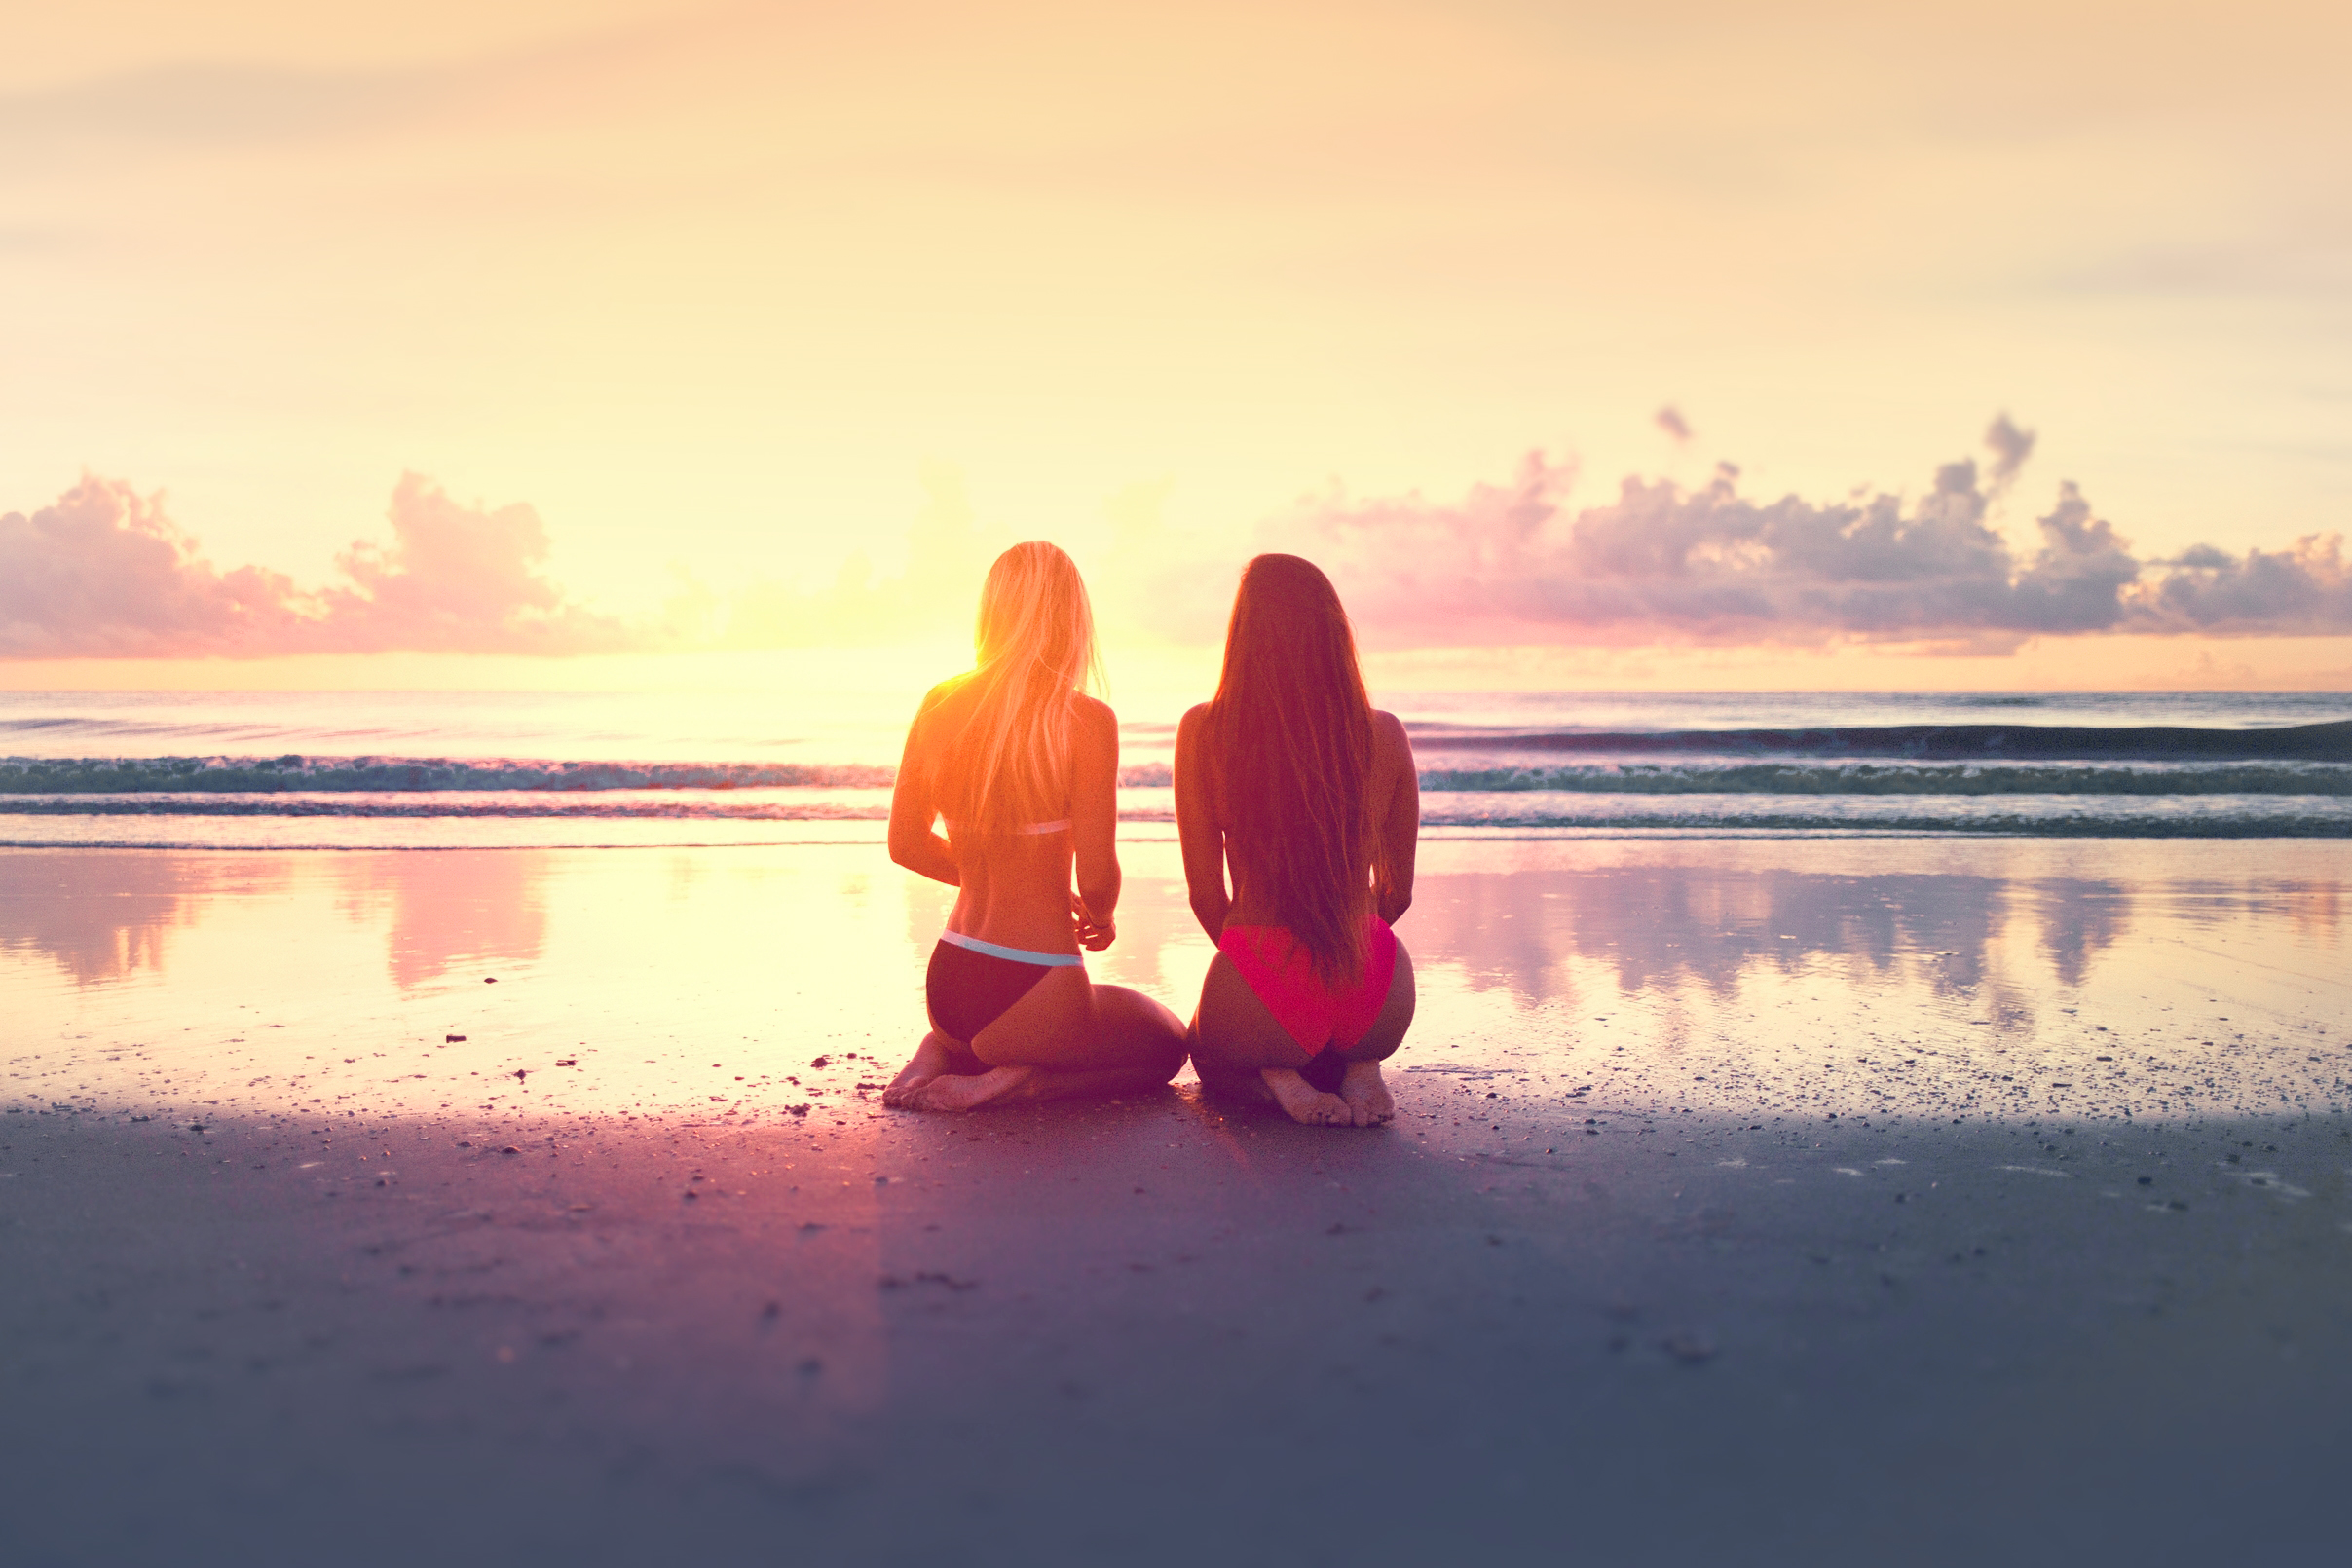 Two Young Women Watching the Sunset Over the Ocean, Seascape, Summer, Slim, Sky, HQ Photo